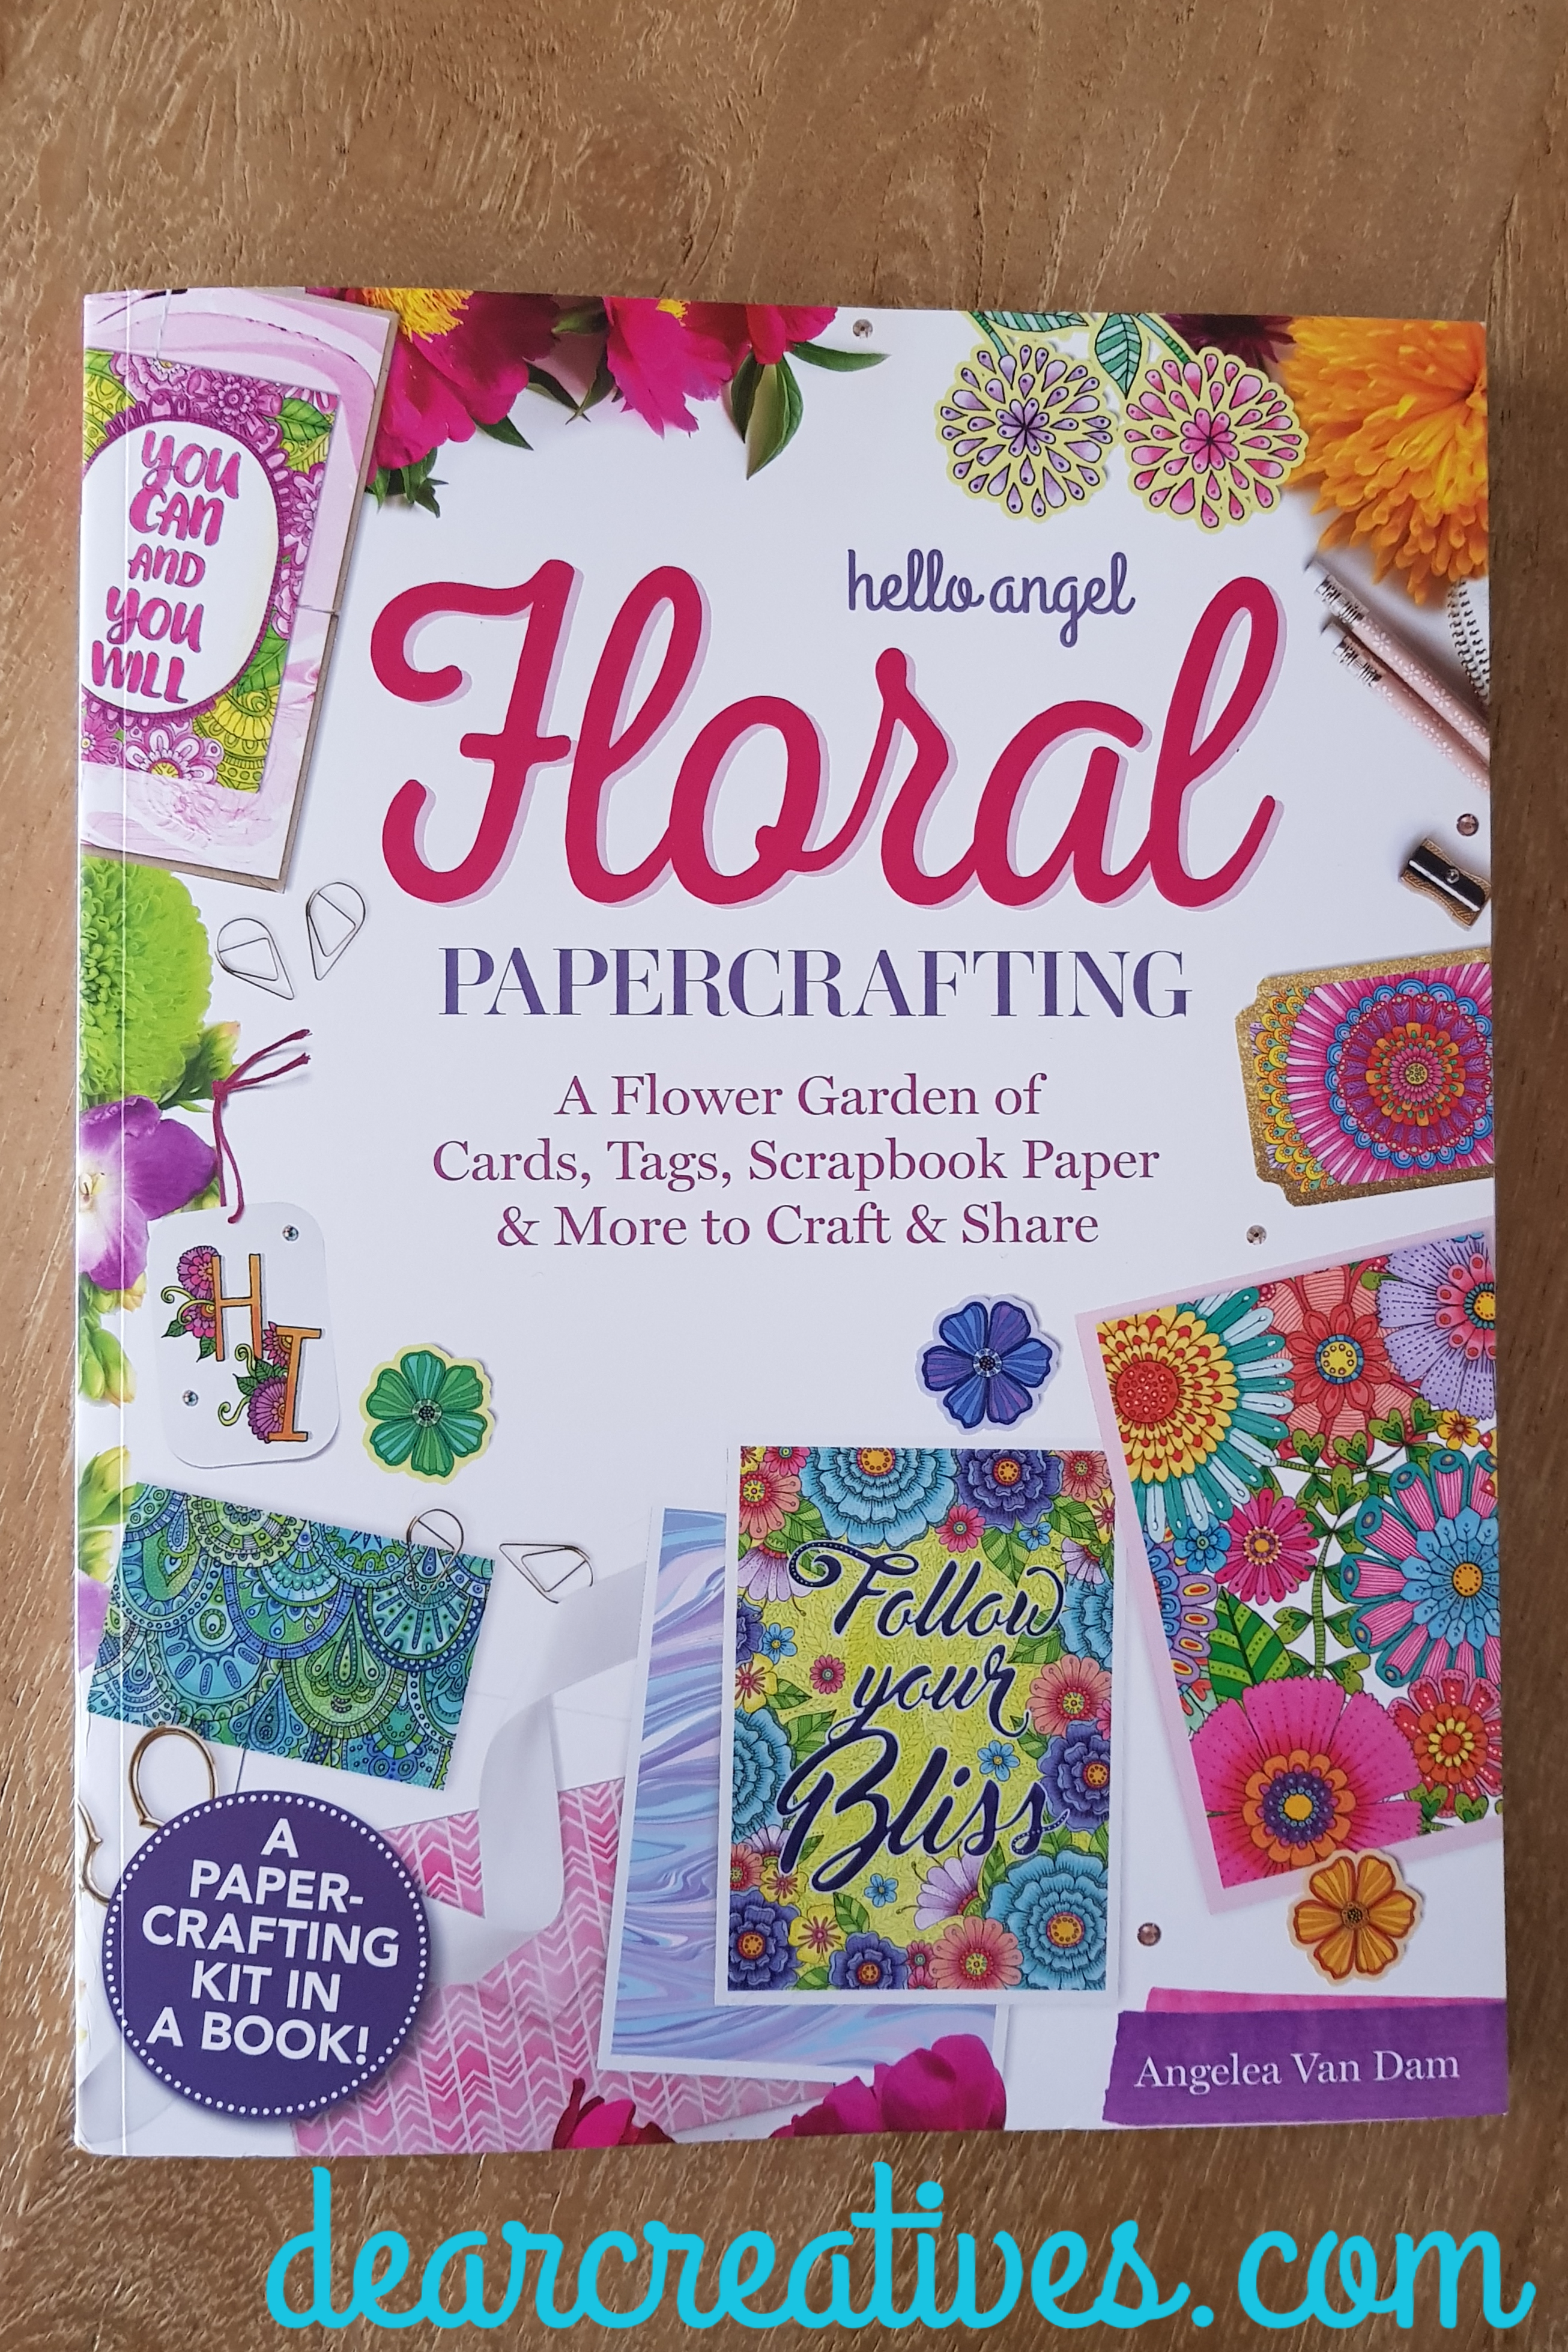 Hello Angel Floral PaperCrafting – Craftbook Review